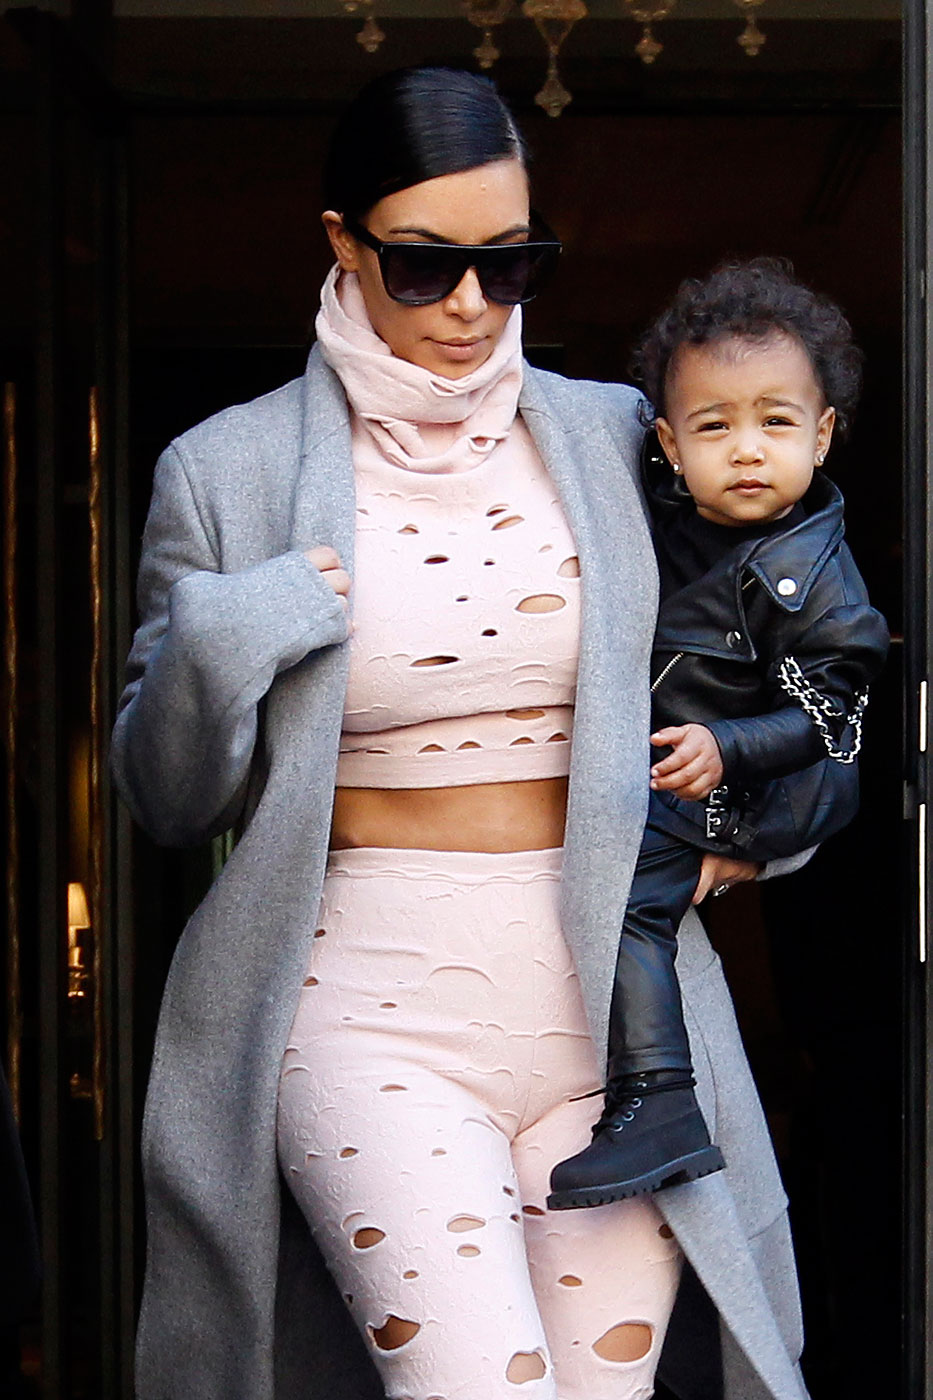 Kim Kardashian heads out for the airport with daughter North West in Paris, France on Oct. 1, 2014.